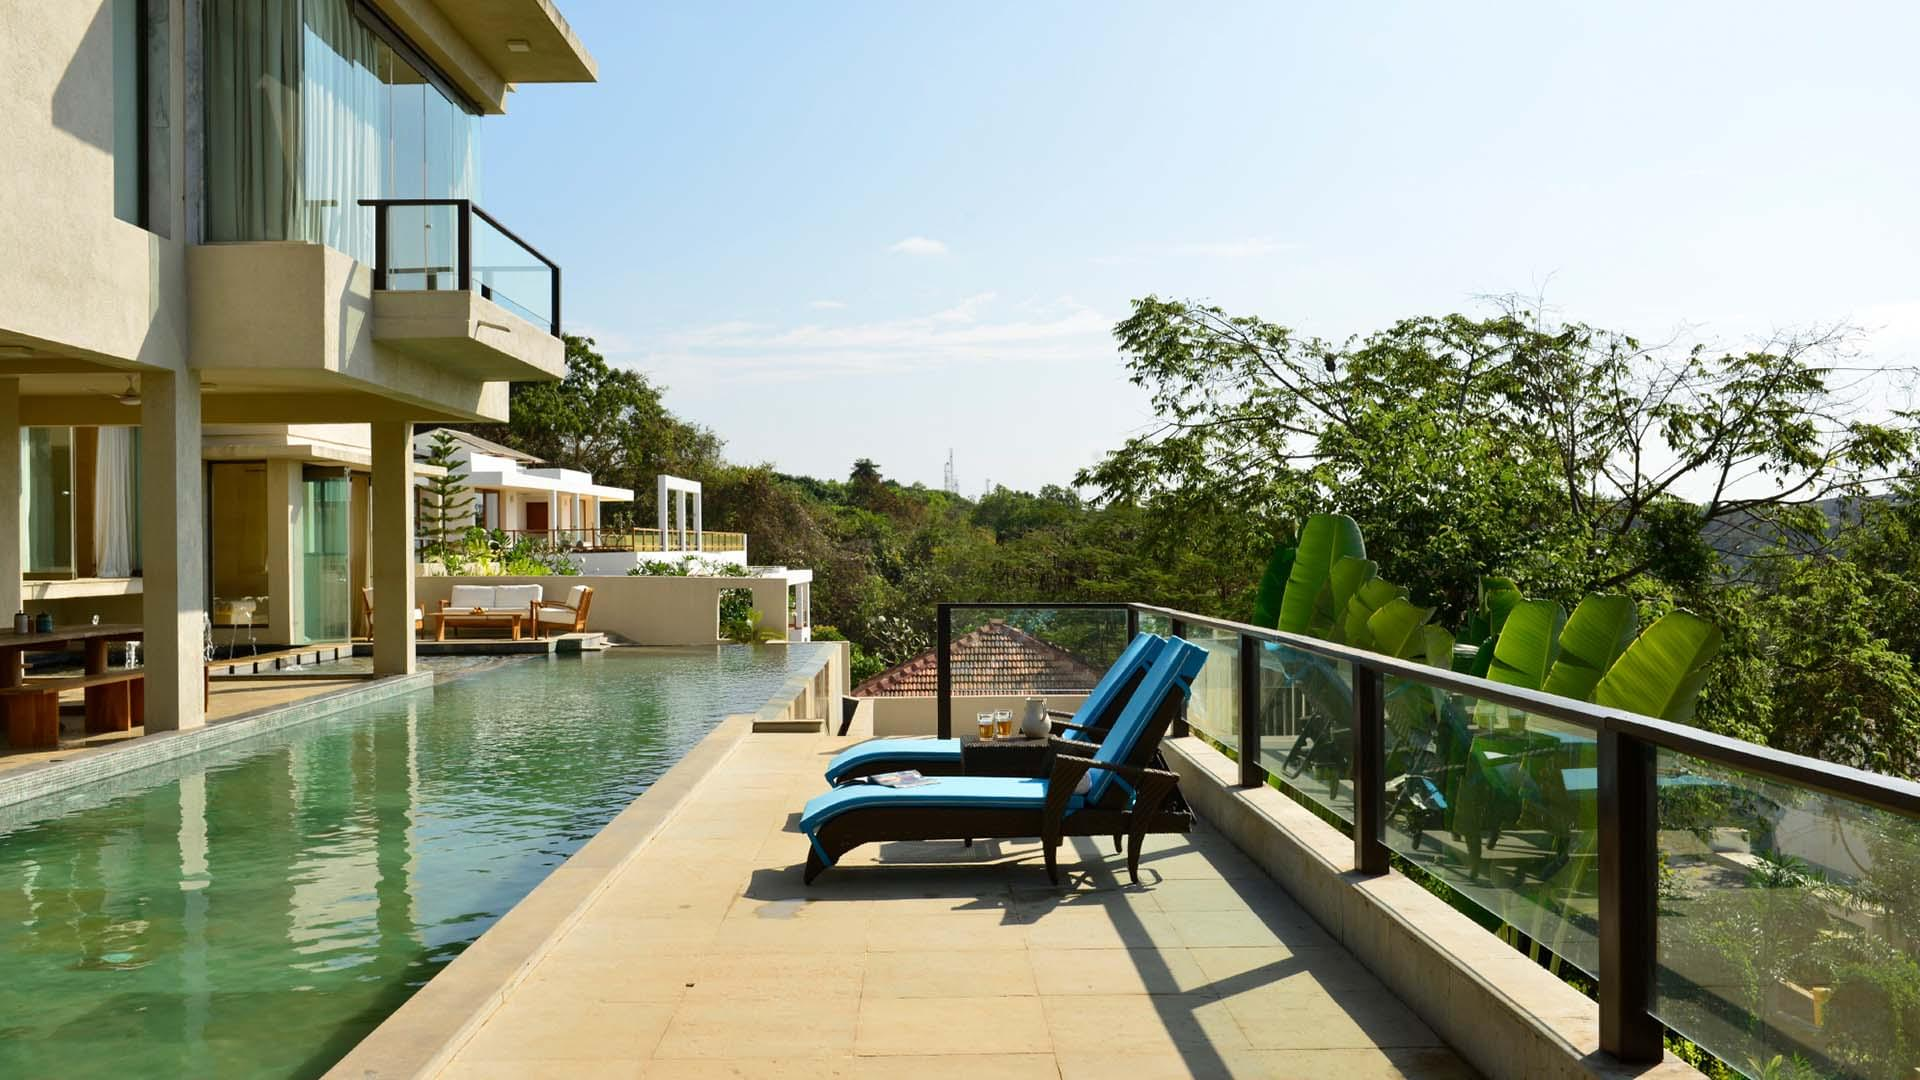 Saipem Hills Luxury Villas Goa